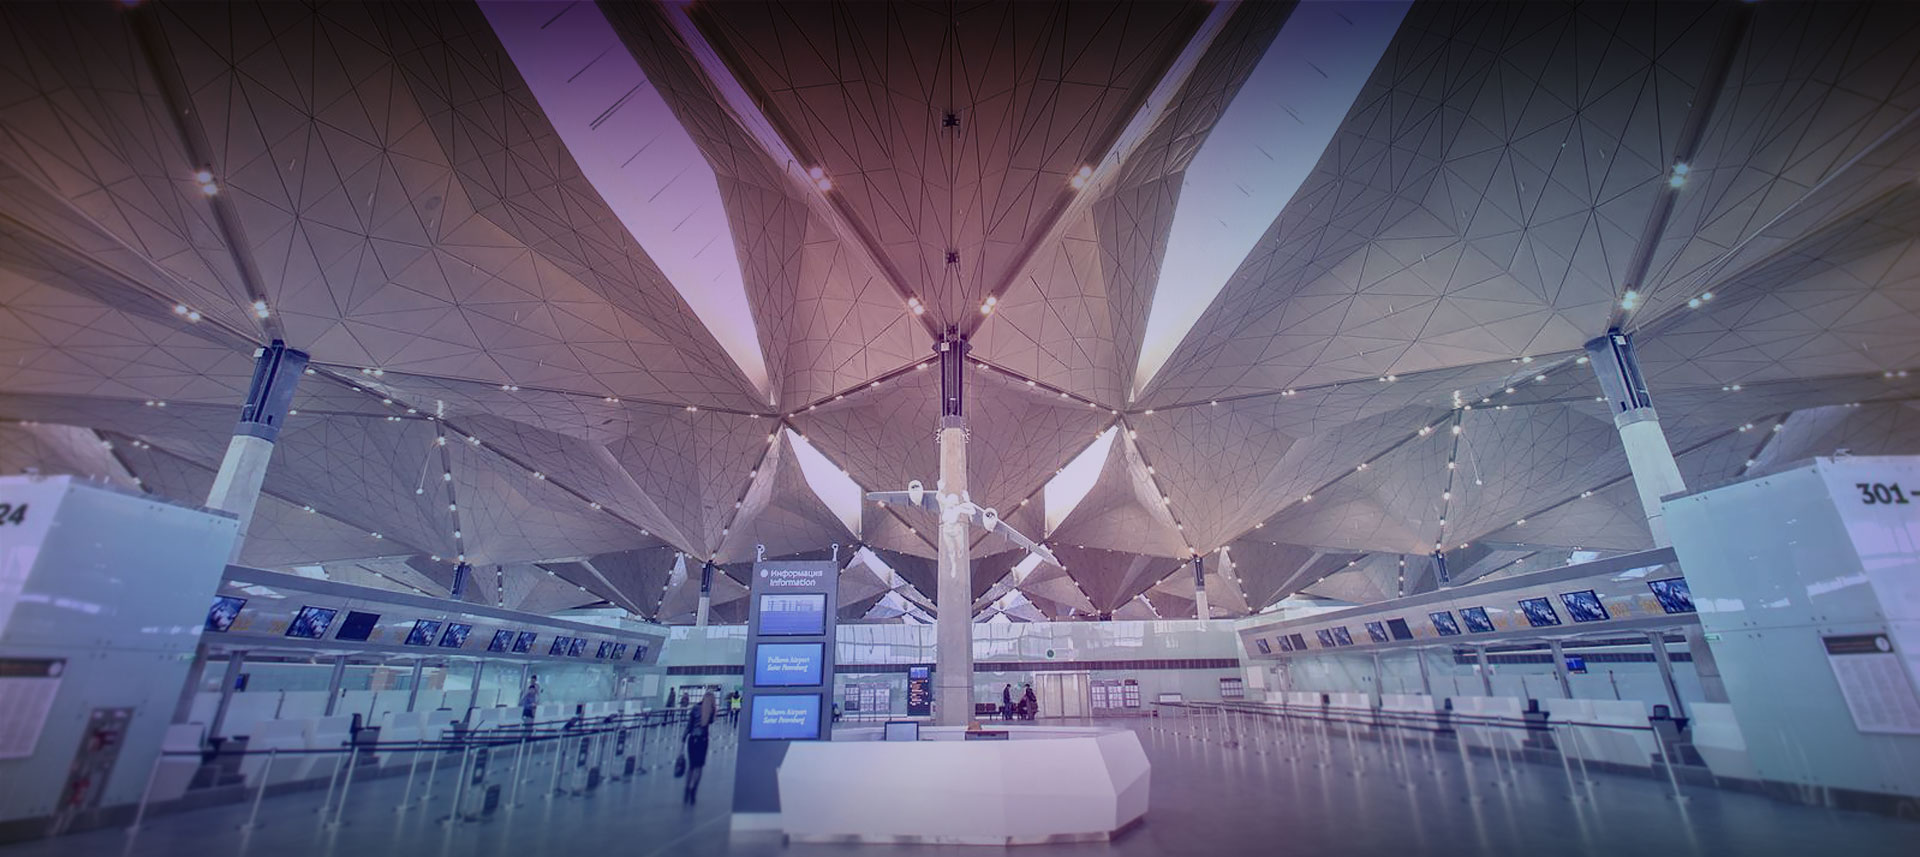 PULKOVO INTERNATIONAL PULKOVA AIRPORT / RUSSIA